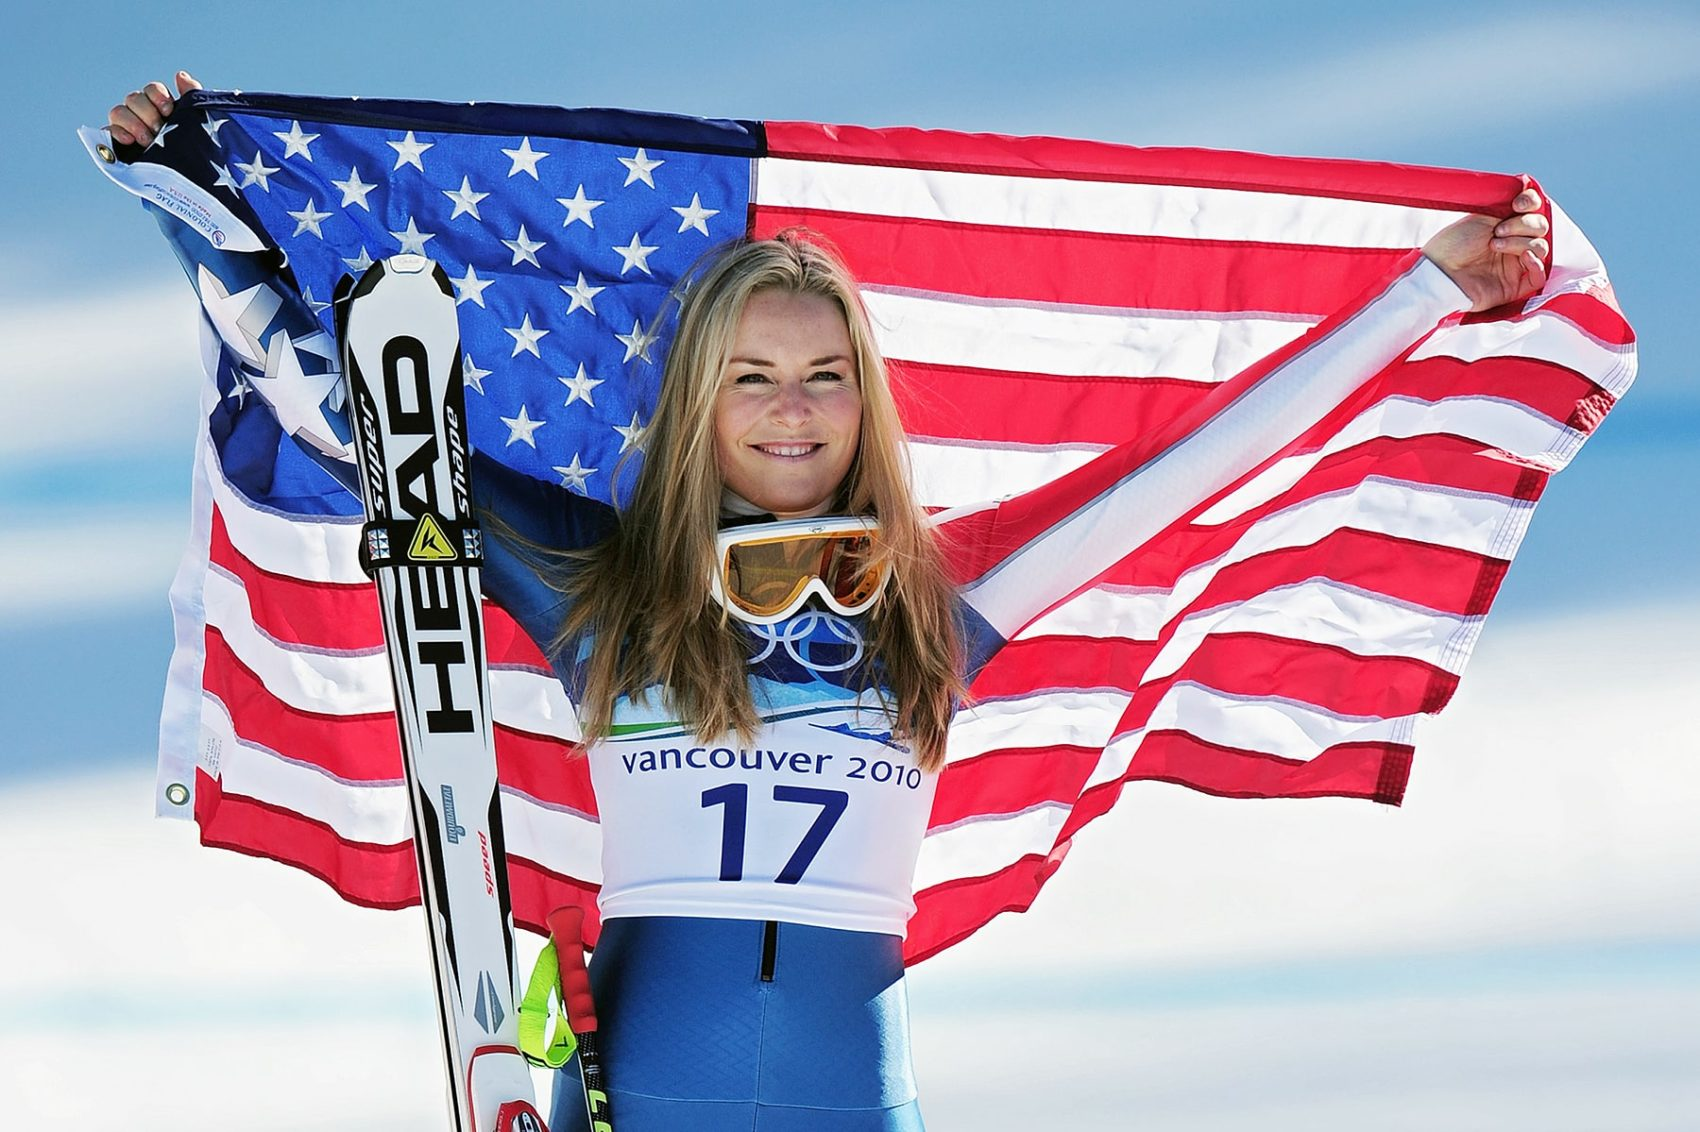 Lindsey Vonn won Gold at the 2010 Winter Olympic Games.